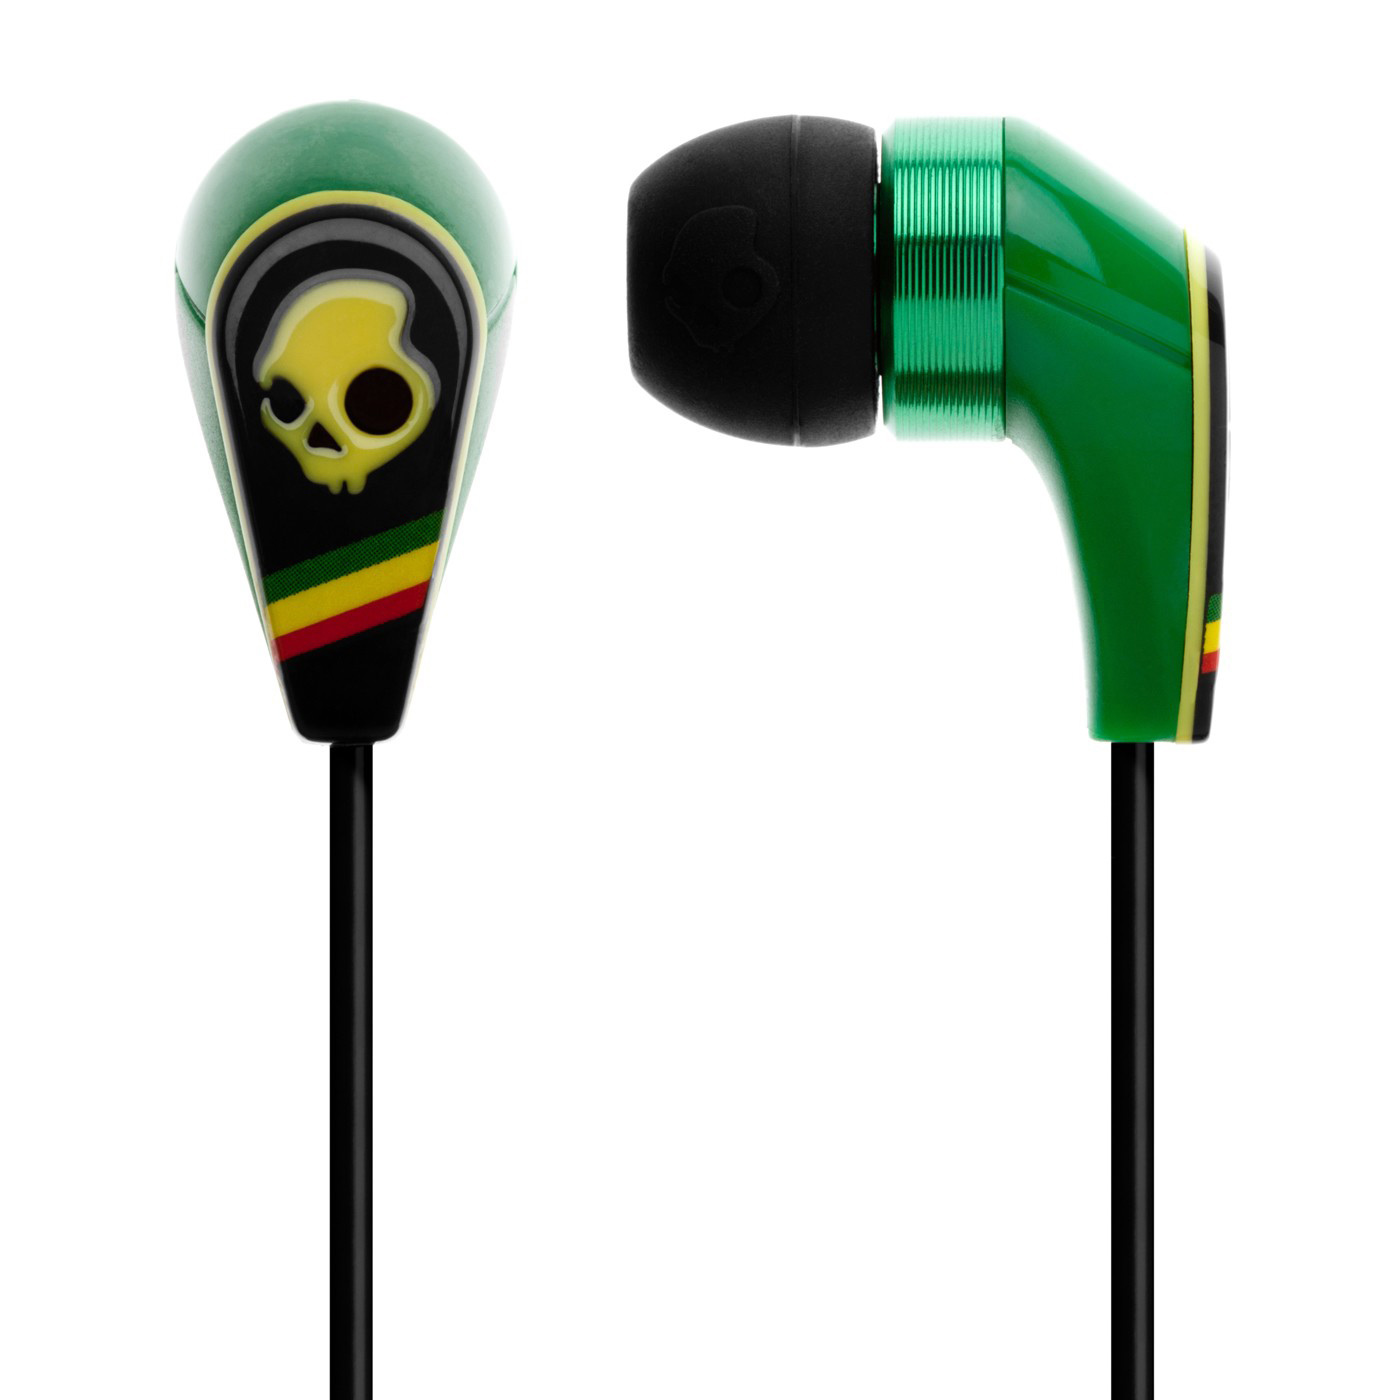 Entertainment Key Features of the Skullcandy 50/50 with Mic 3 Earbuds: In-Line Mic3 11mm Power Drivers Nylon Mesh Carry Case 3 Silicone Gel Sizes Mic3+Control switch+Volume control Play/Pause/Track control Speaker Diameter: 11mm Magnet Type: NdFeB Frequency Response: 20-20k Hz Impedance: 16 ohms Max Input Power: 100mW Cable Type: TPE Cable Length: 1.3M Plug Type: 3.5mm Gold Plated Volume function compatible with: iPhone 4, iPhone 3GS, iPad (1st and 2nd Generation), iPod Touch (2nd, 3rd, and 4th Generation), iPod Classic (2009), iPod Nano (4th, 5th, and 6th Generation), iPod Shuffle (3rd and 4th Generation), and MacBook Pro - $29.95